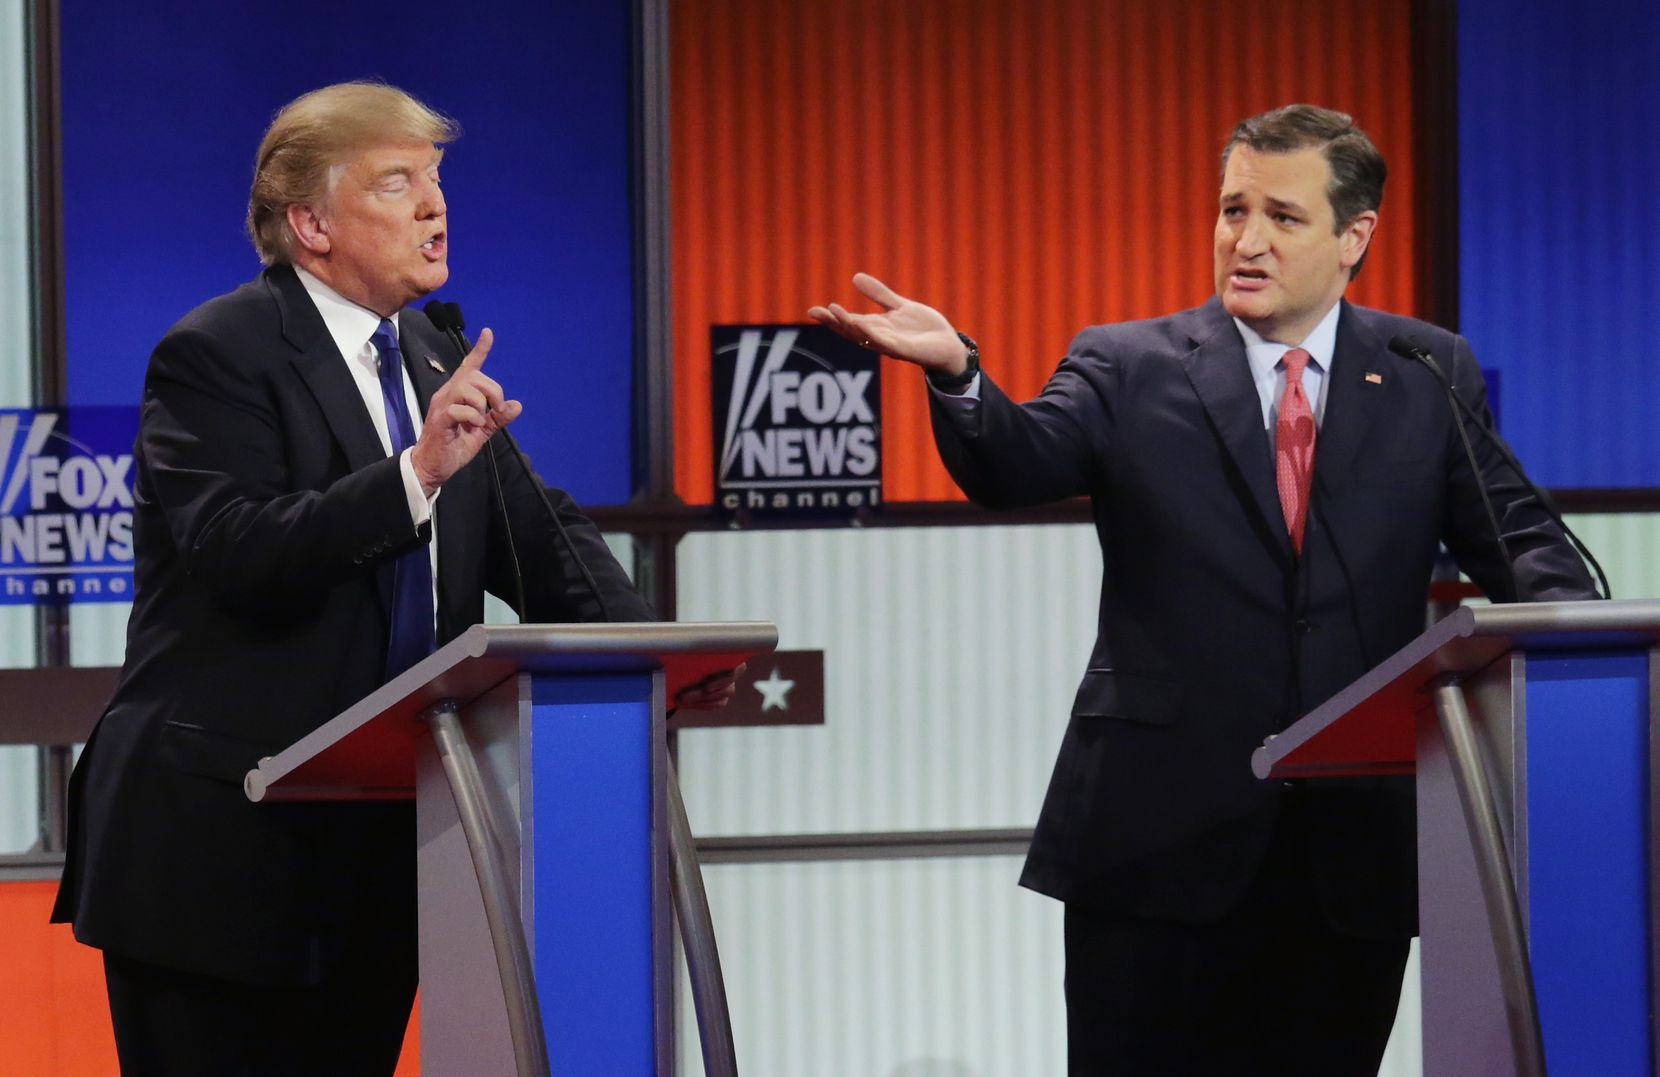 Donald Trump and Sen. Ted Cruz participated in a GOP presidential debate in Detroit on March 3, 2016.